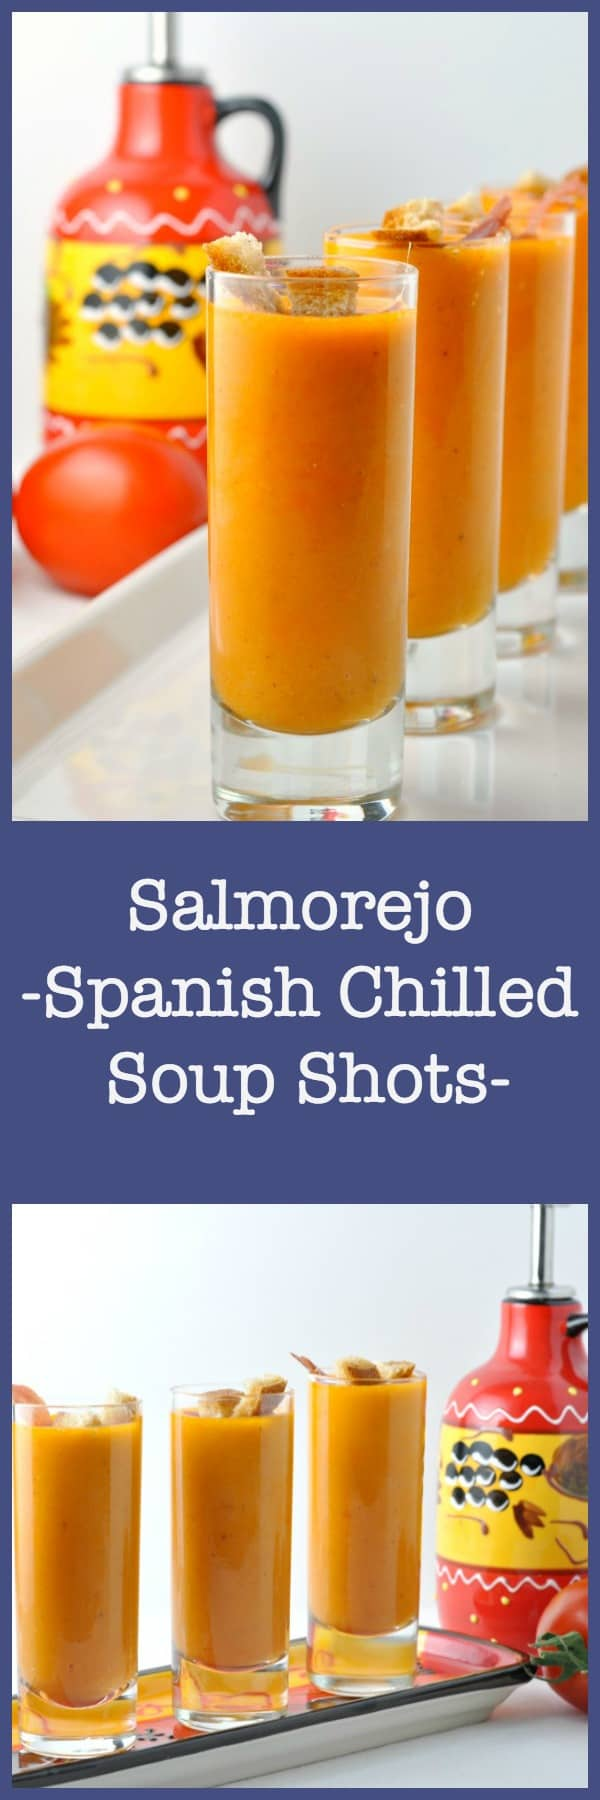 Soup Shots for summer! Spanish chilled soup |www.flavourandsavour.com